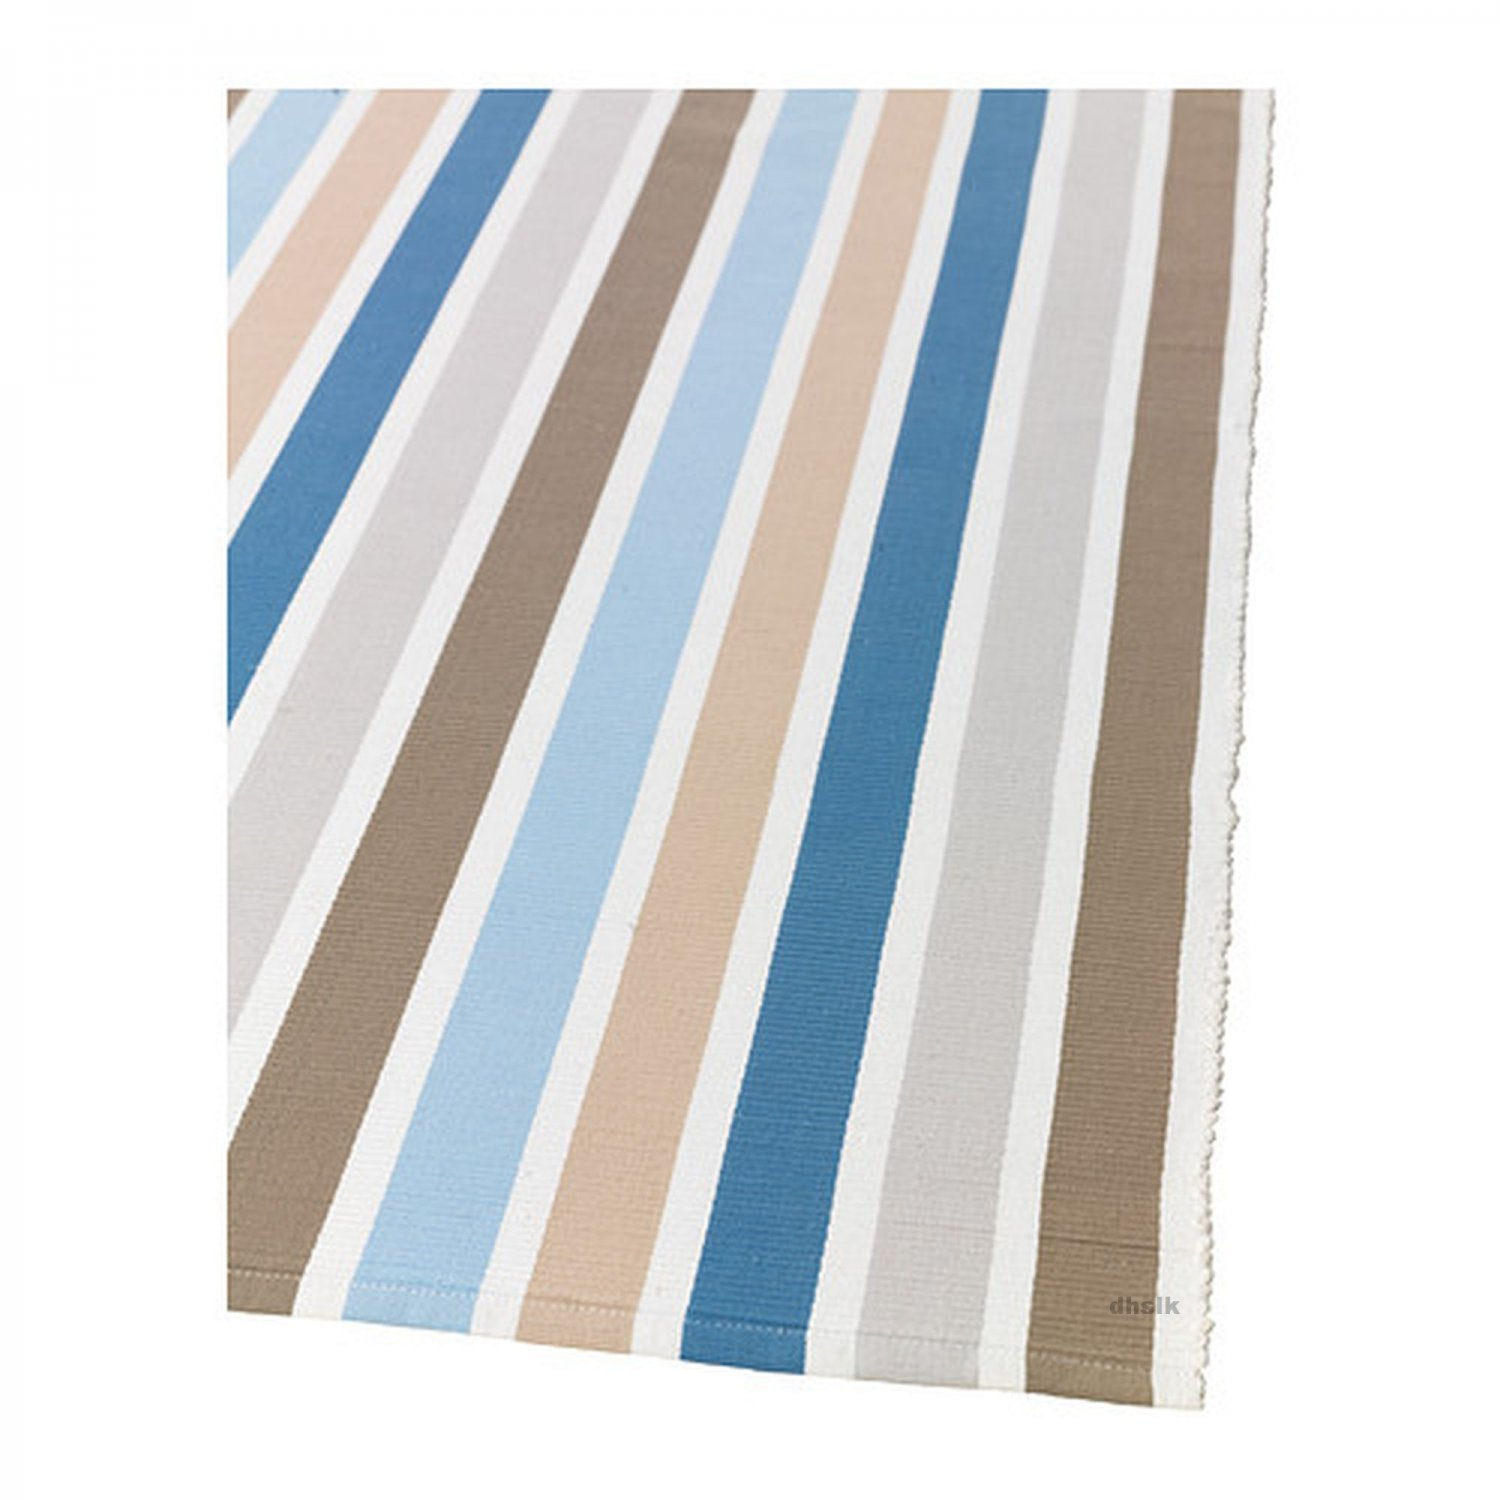 Blue And White Scandinavian Rug: IKEA EMMIE BLUE Beige White STRIPES Area Throw RUNNER RUG